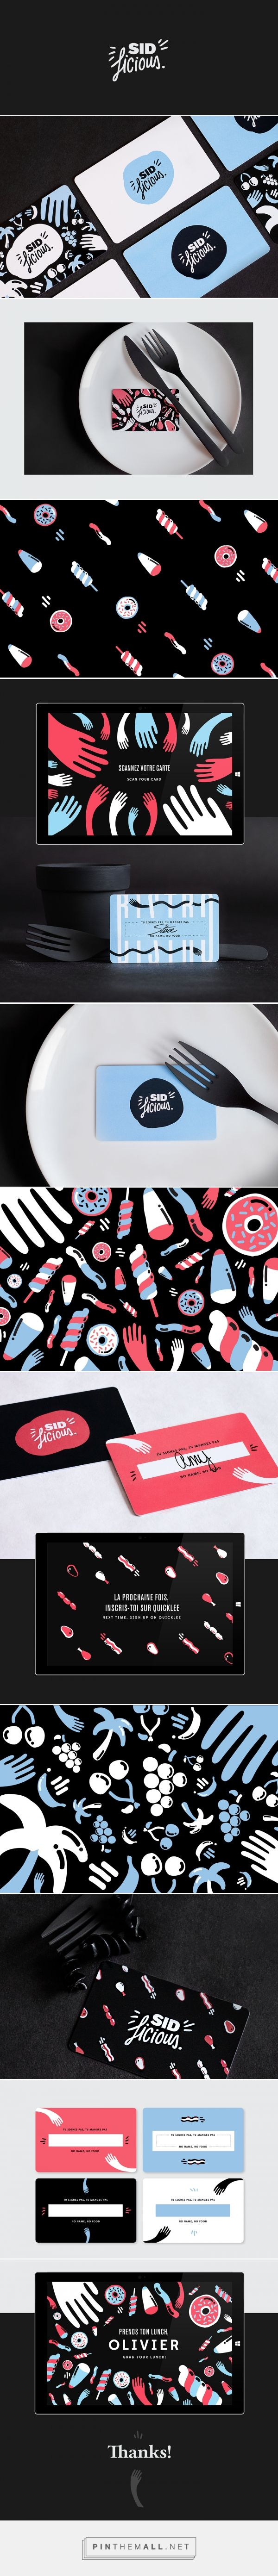 Sid Licious Bistro by Sid Lee on Behance   Fivestar Branding – Design and Branding Agency & Inspiration Gallery